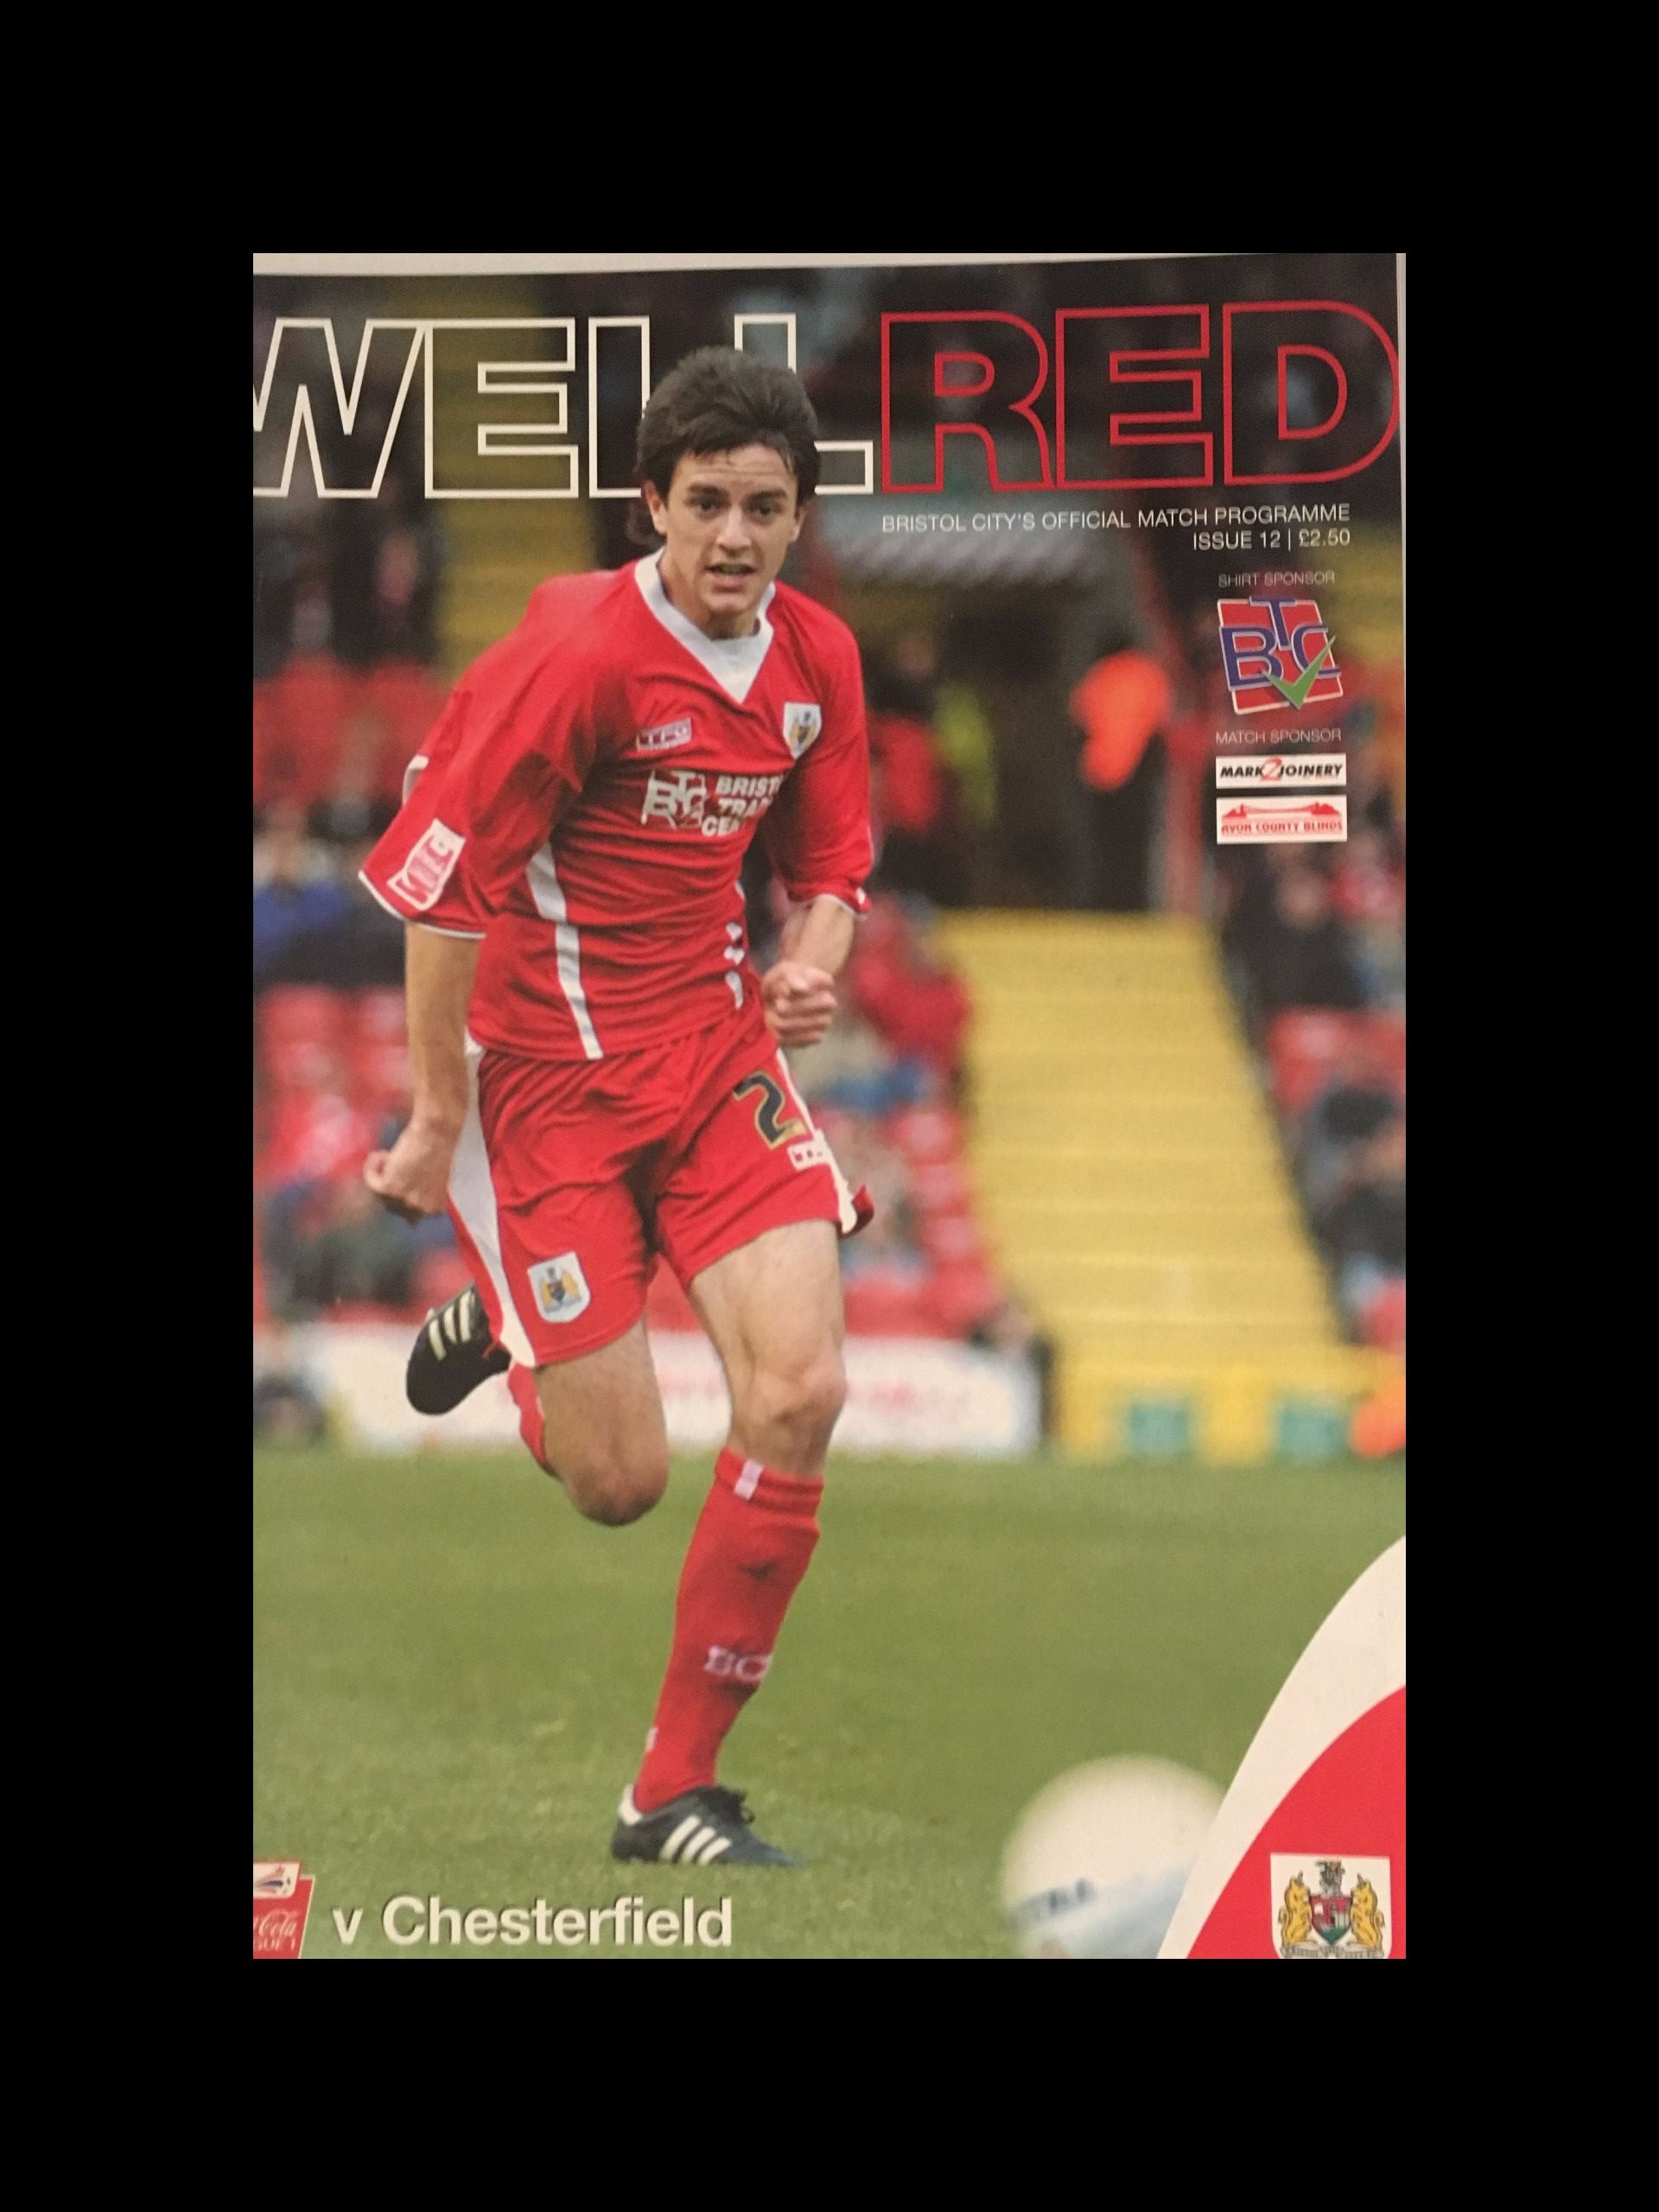 Bristol City v Chesterfield 19-11-2005 Programme